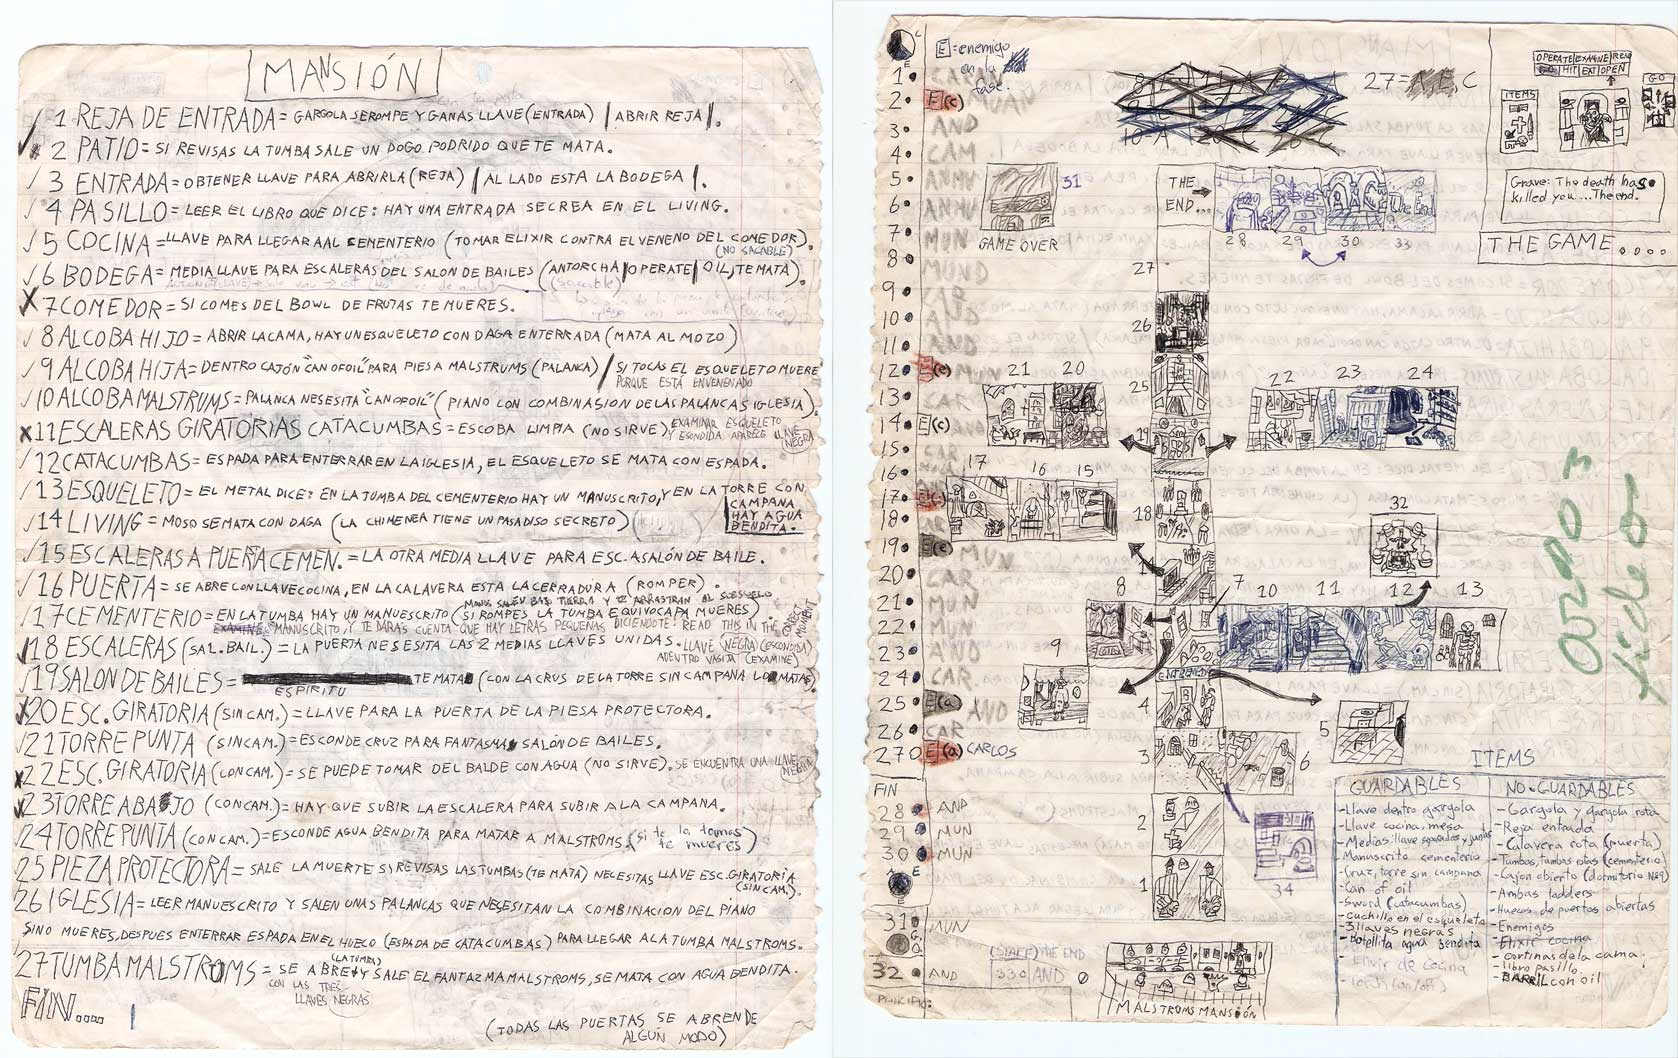 My Design Docs look something like this...